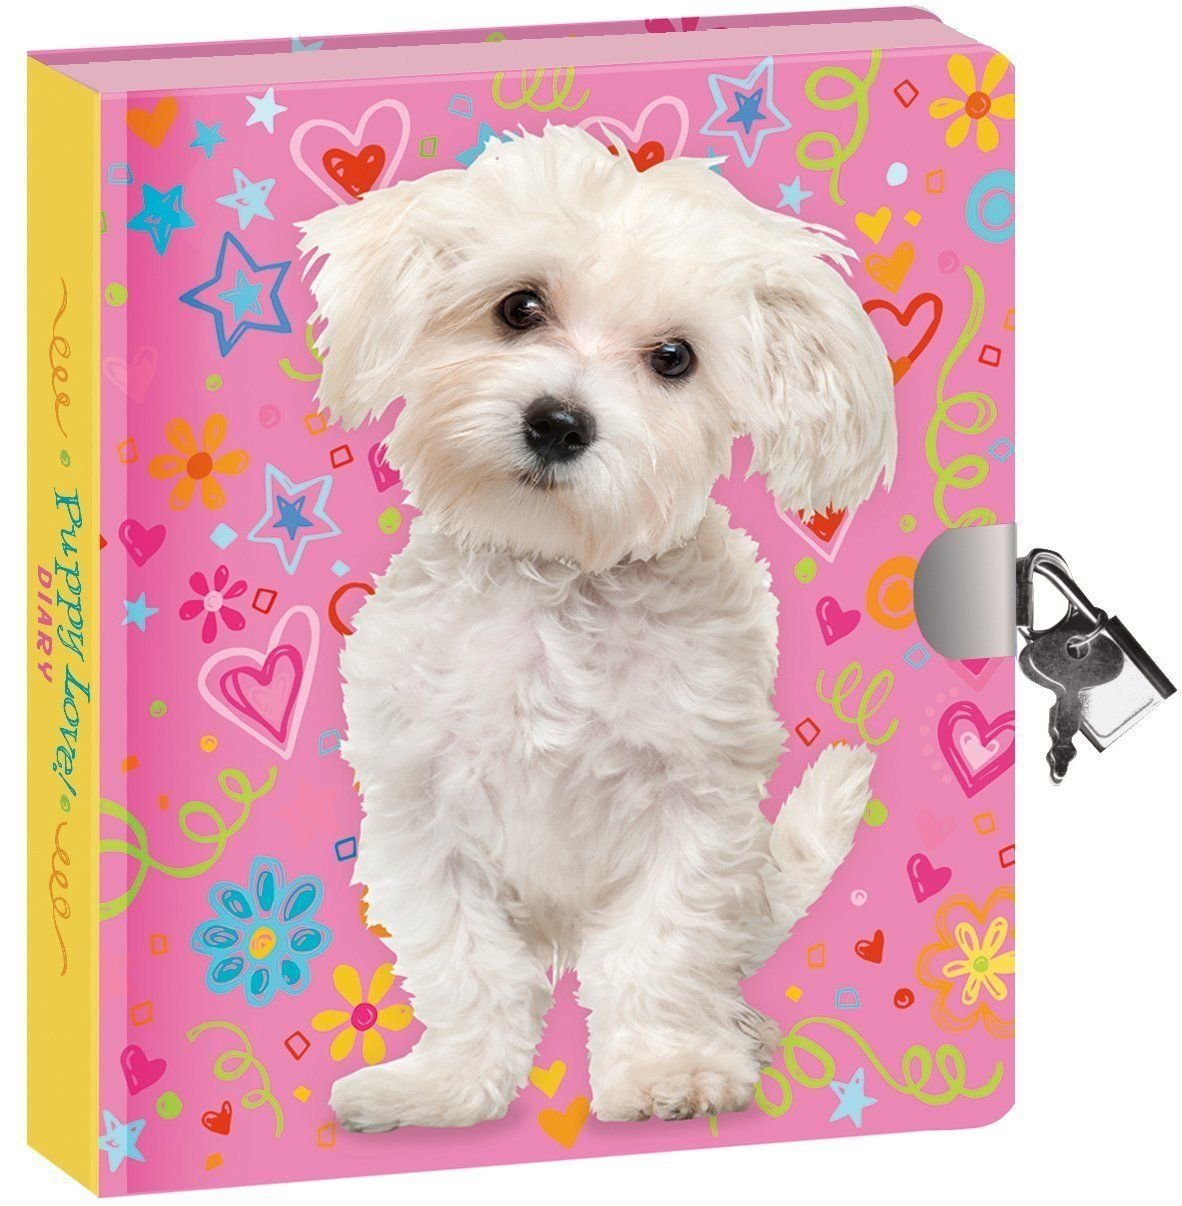 Peaceable Kingdom Puppy Love 6 25